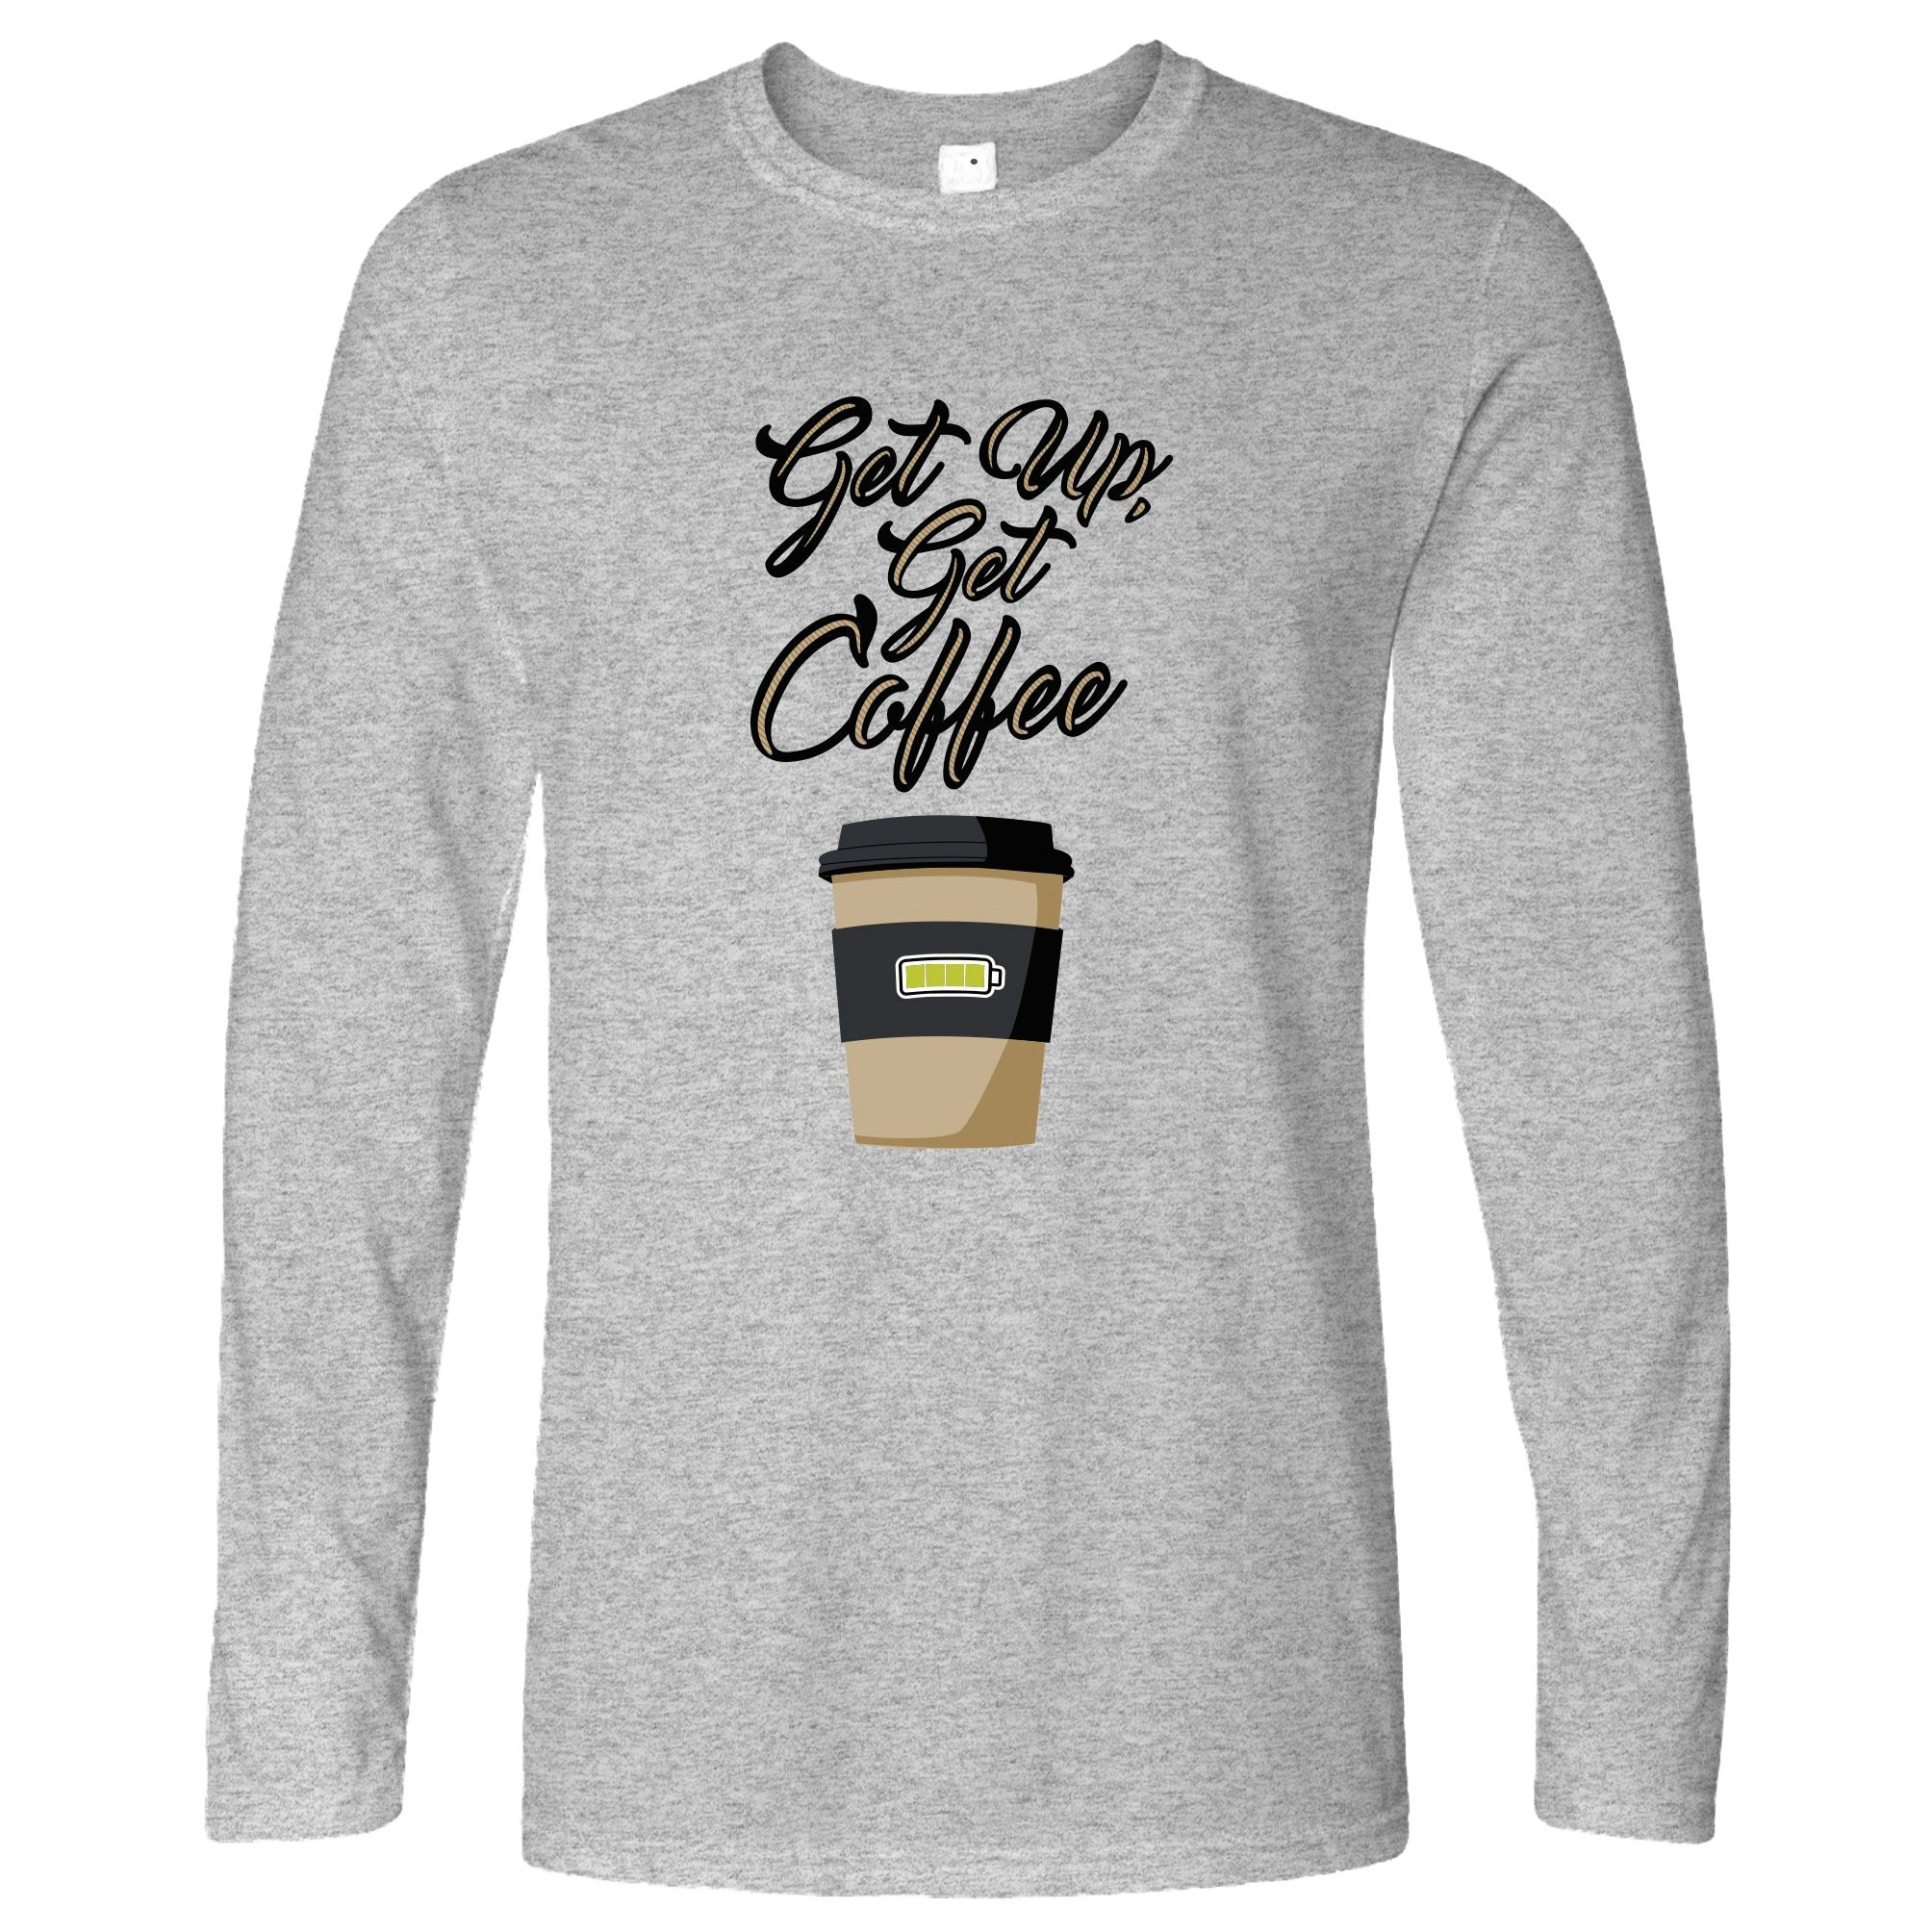 Morning Motivation Long Sleeve Get Up, Get Coffee Slogan T-Shirt